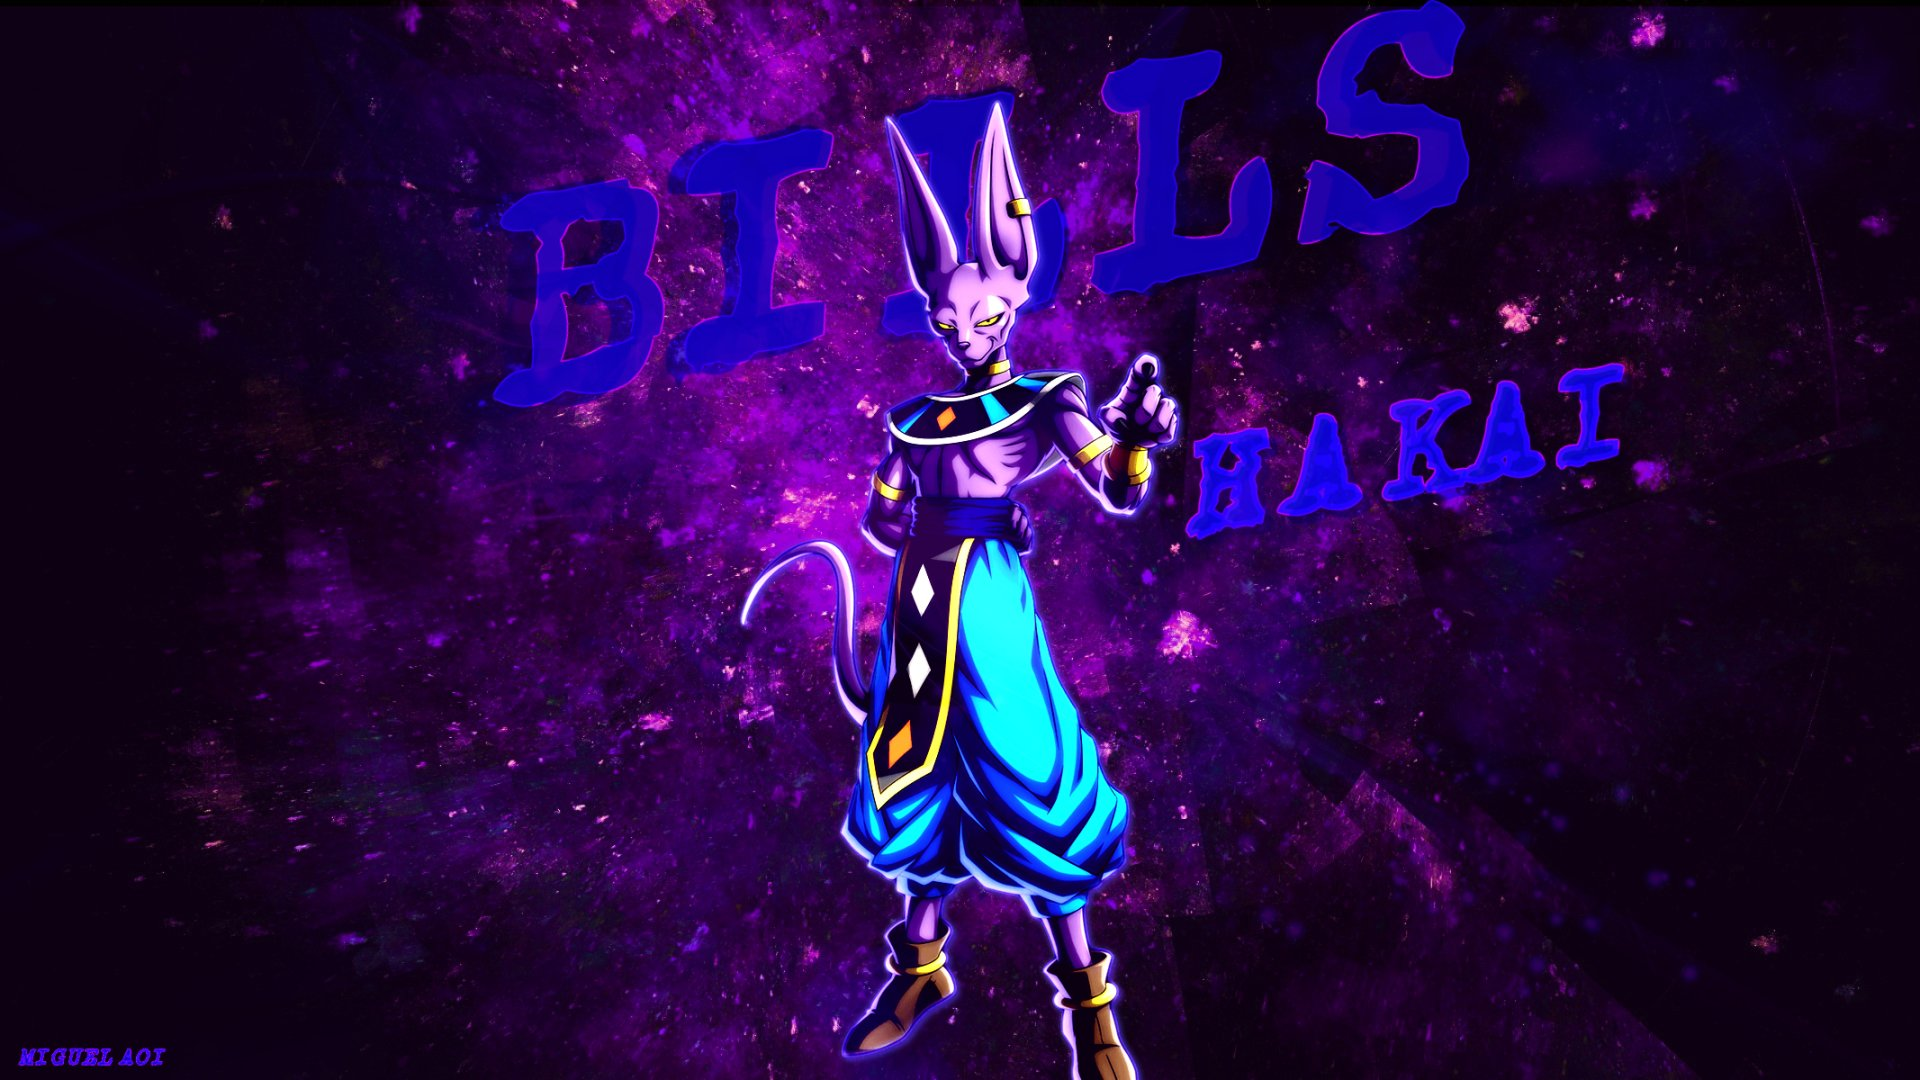 54 Beerus Dragon Ball Hd Wallpapers Background Images Wallpaper Abyss Page 2